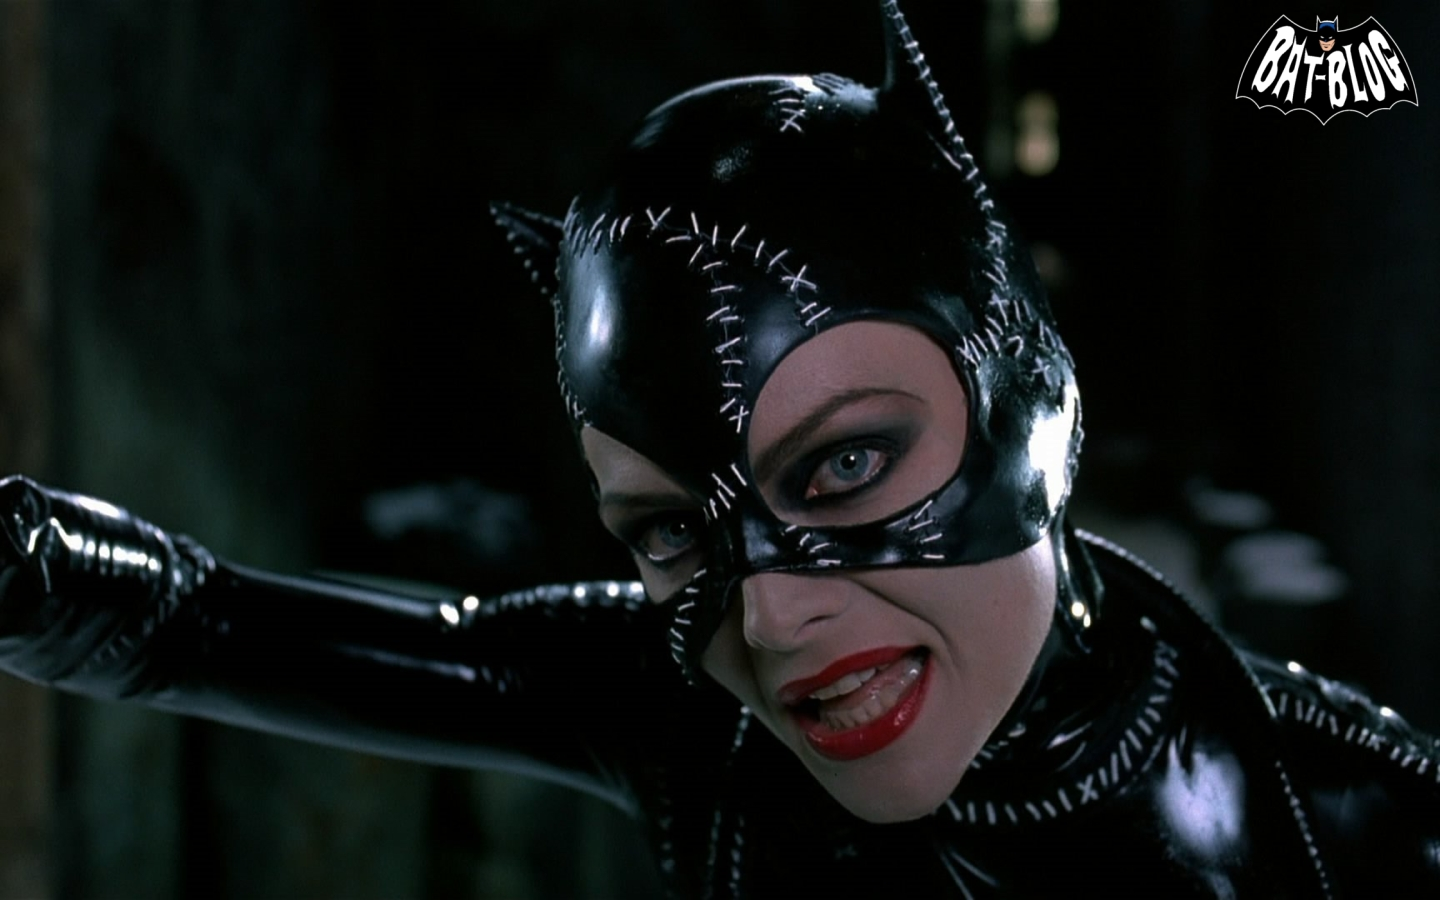 catwoman wallpaper backgrounds to brighten your day and your pc